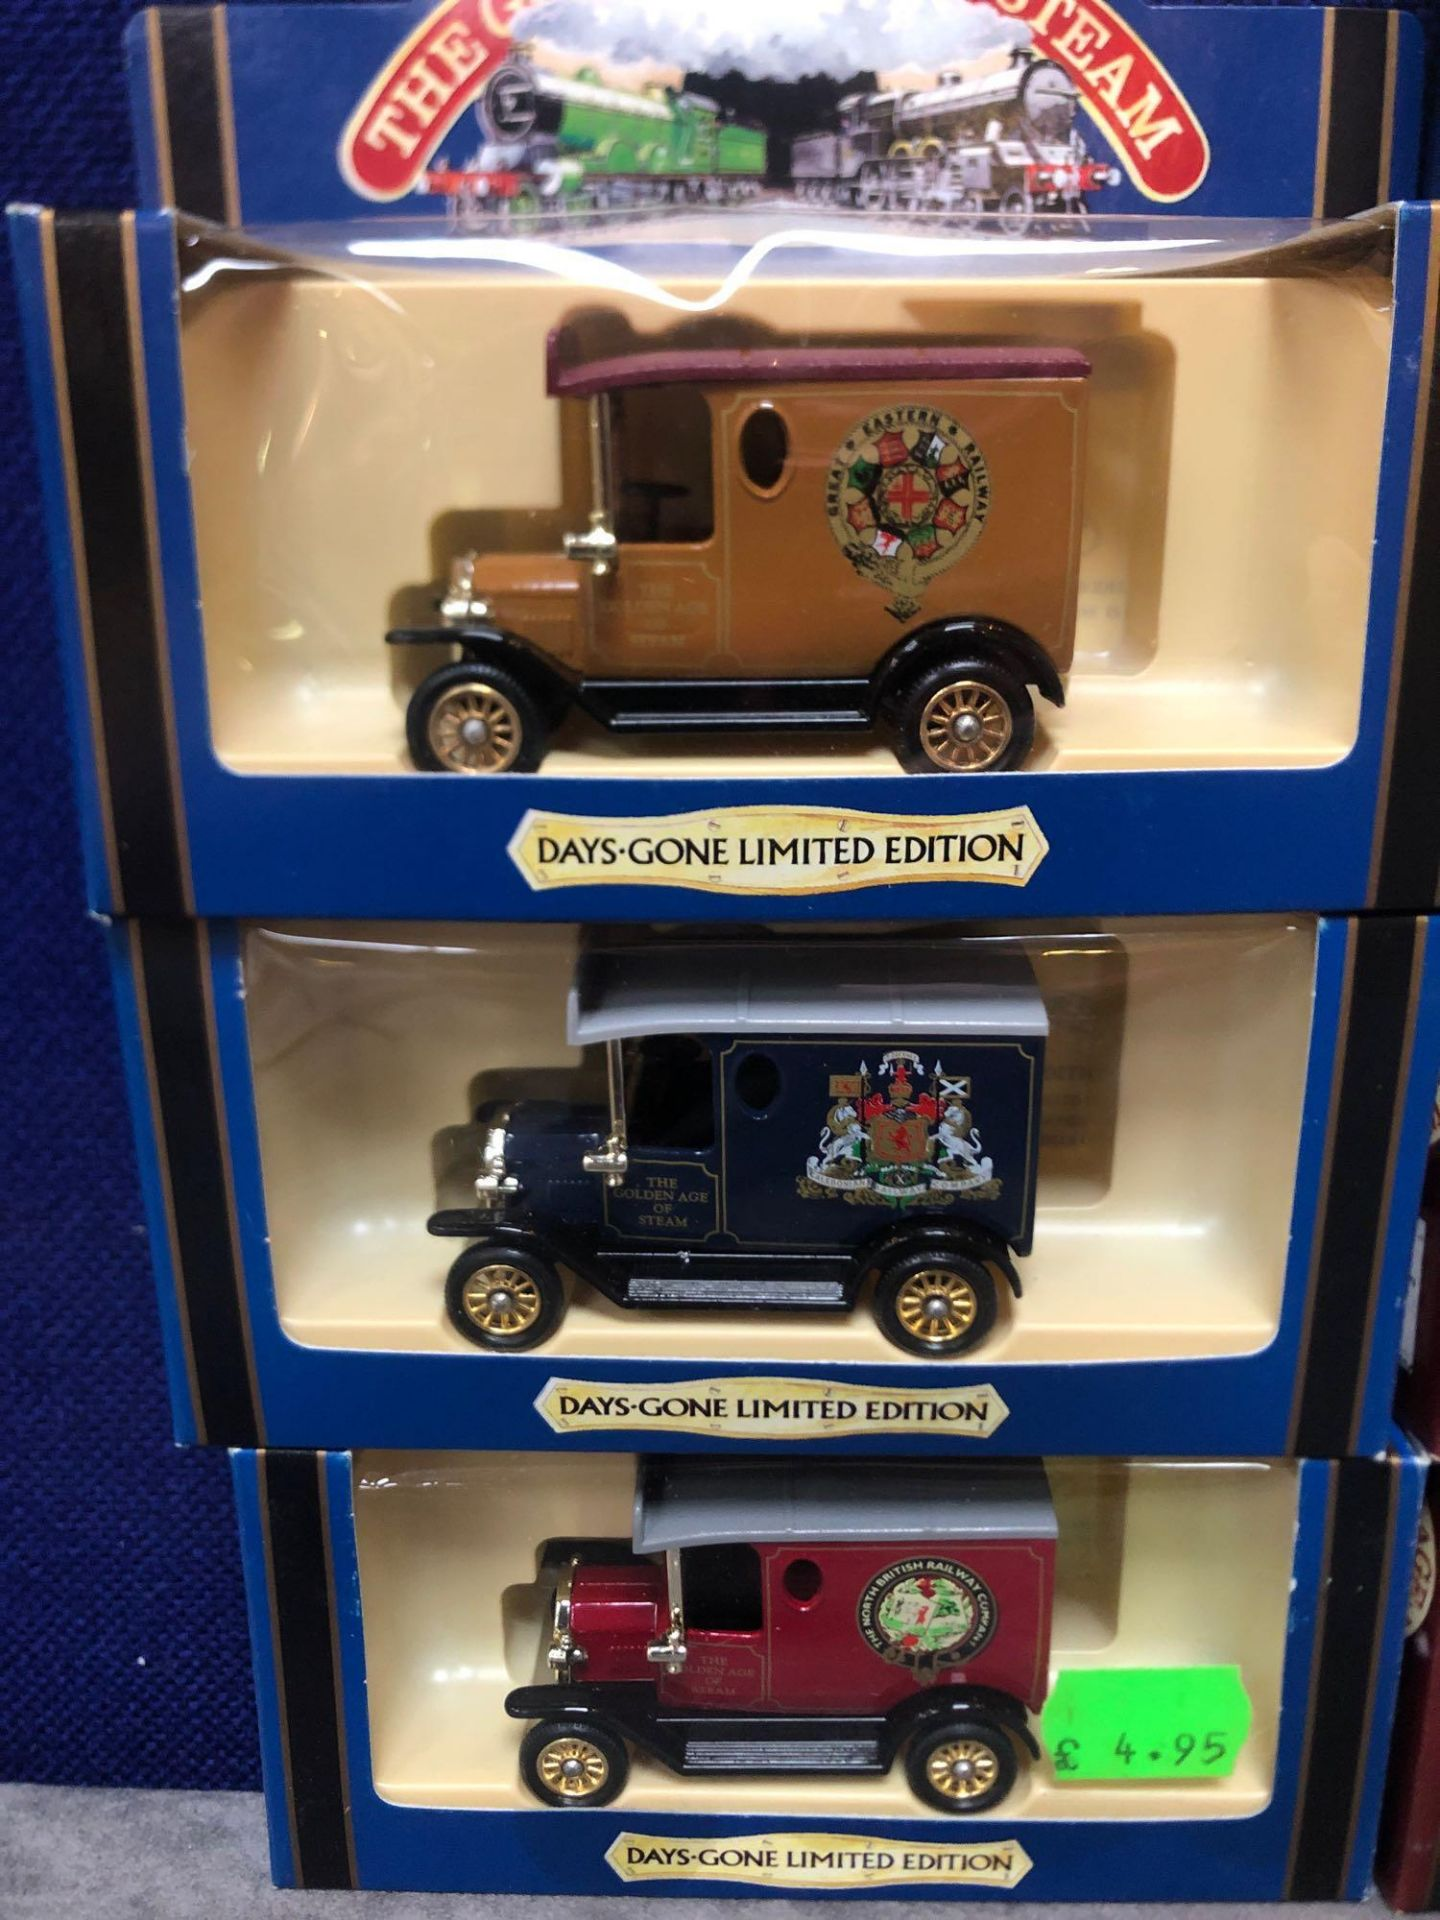 10x Diecast The Days Gone Limited Edition The Golden Age Of Steam Vehicles In Boxes - Image 2 of 4